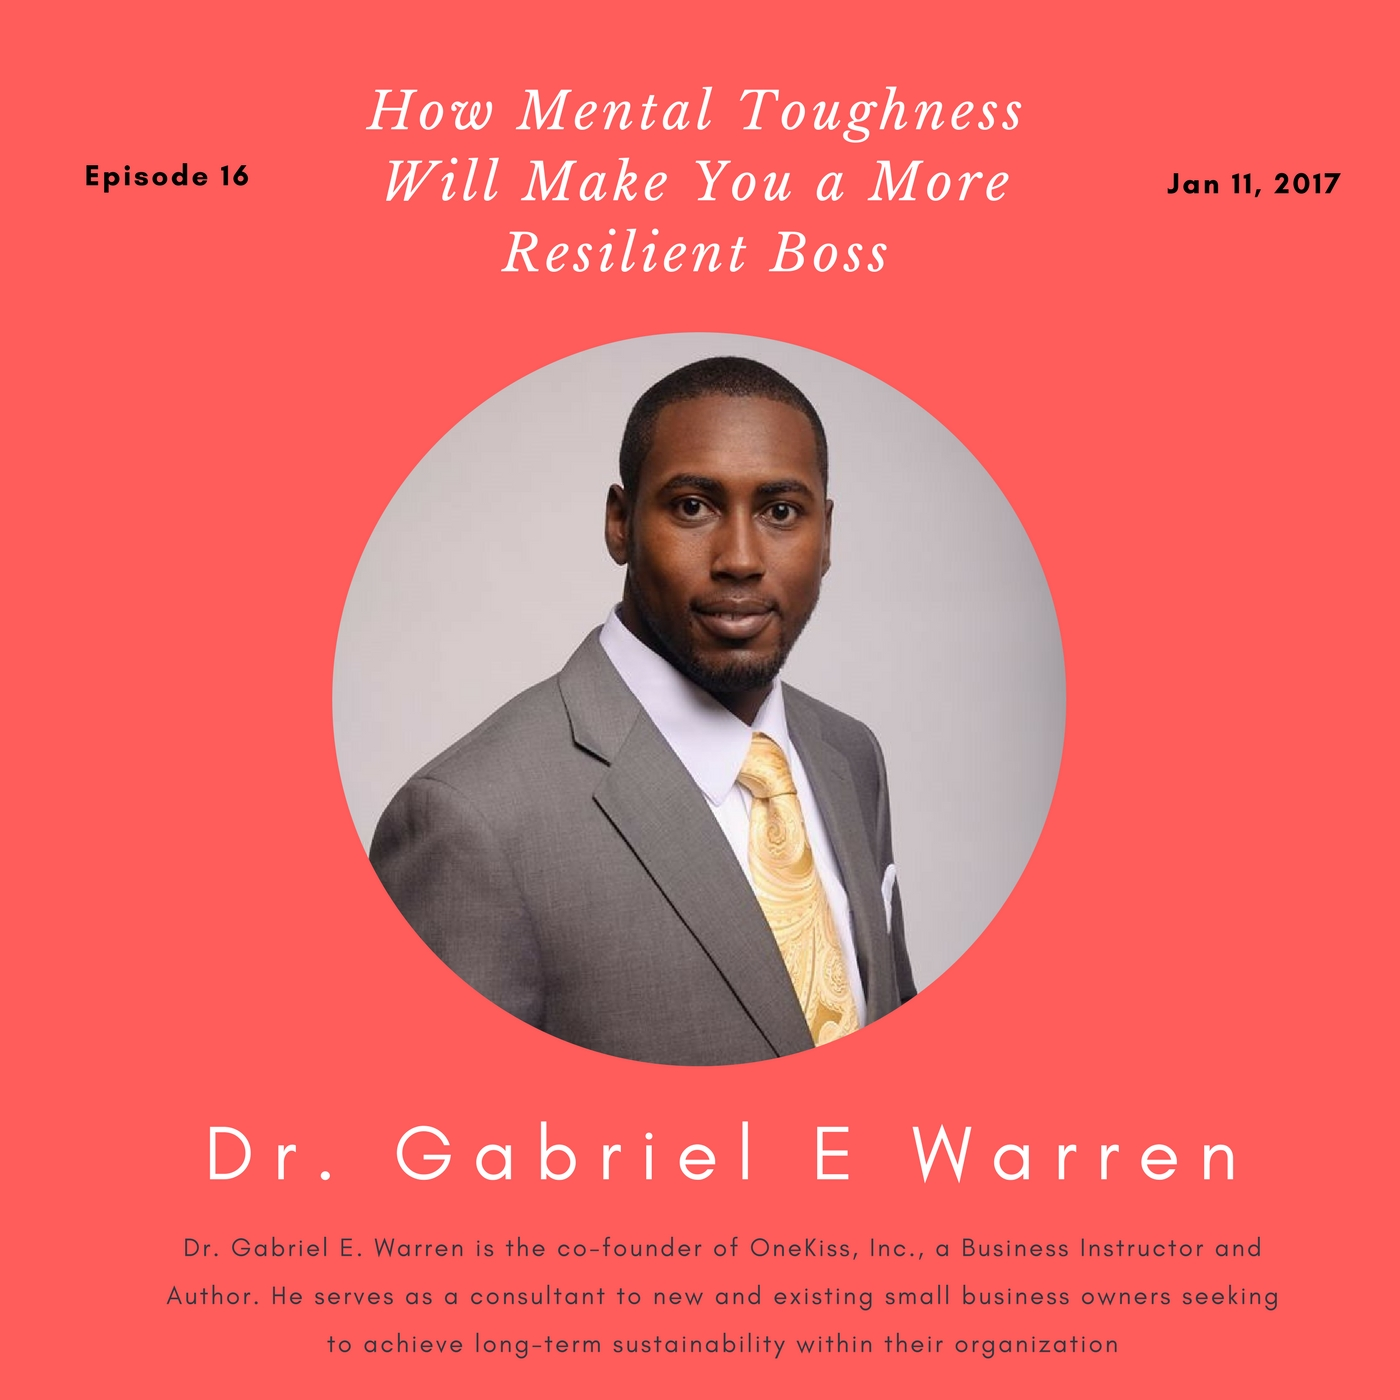 [Ep. 16] How Mental Toughness Will Make You a More Resilient Boss